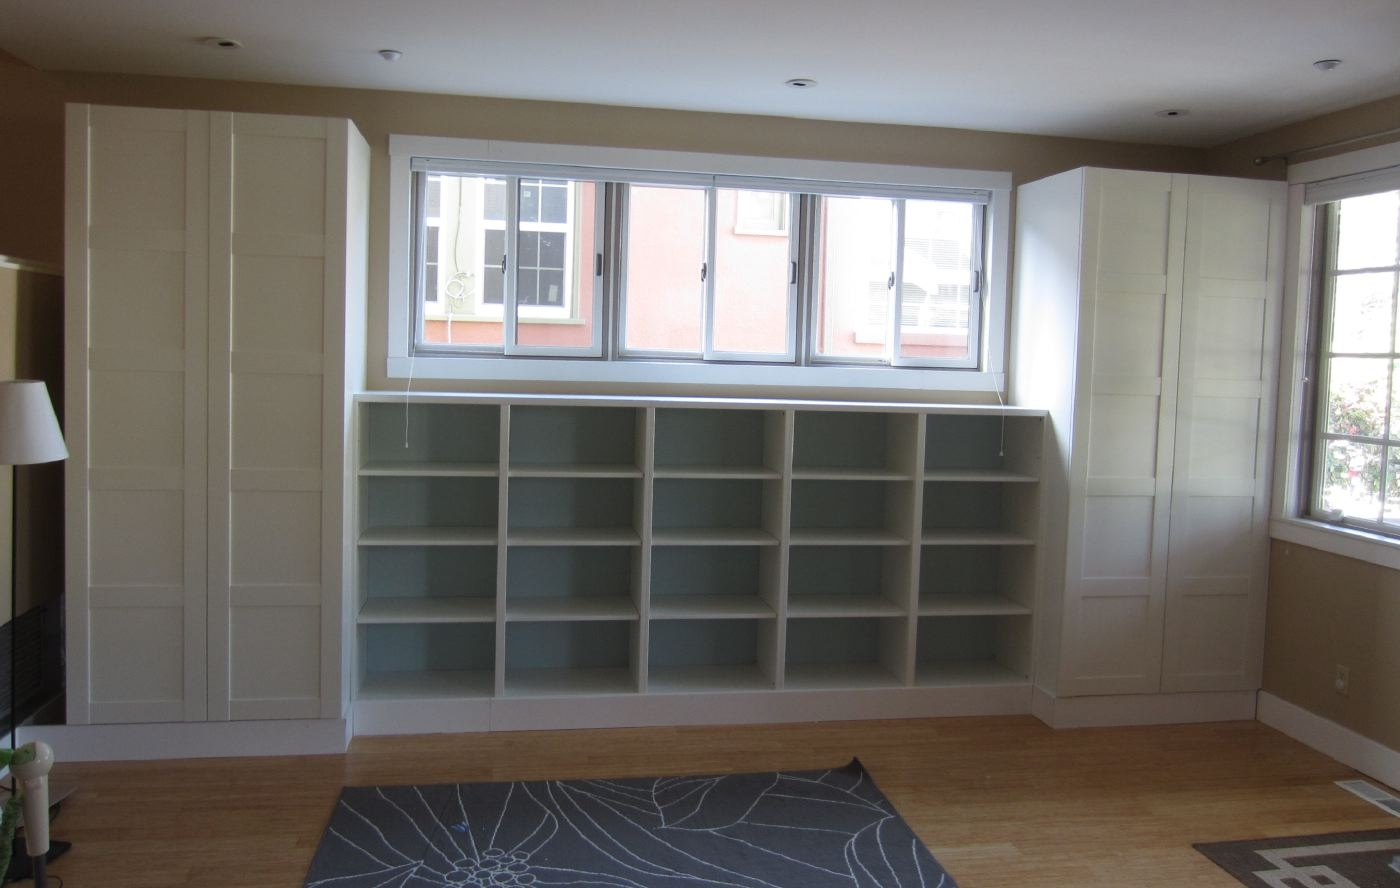 Diy Built Ins Using Ikea Besta Shelves And Pax Wardrobes Throughout Built In Cupboard Shelving (#10 of 15)